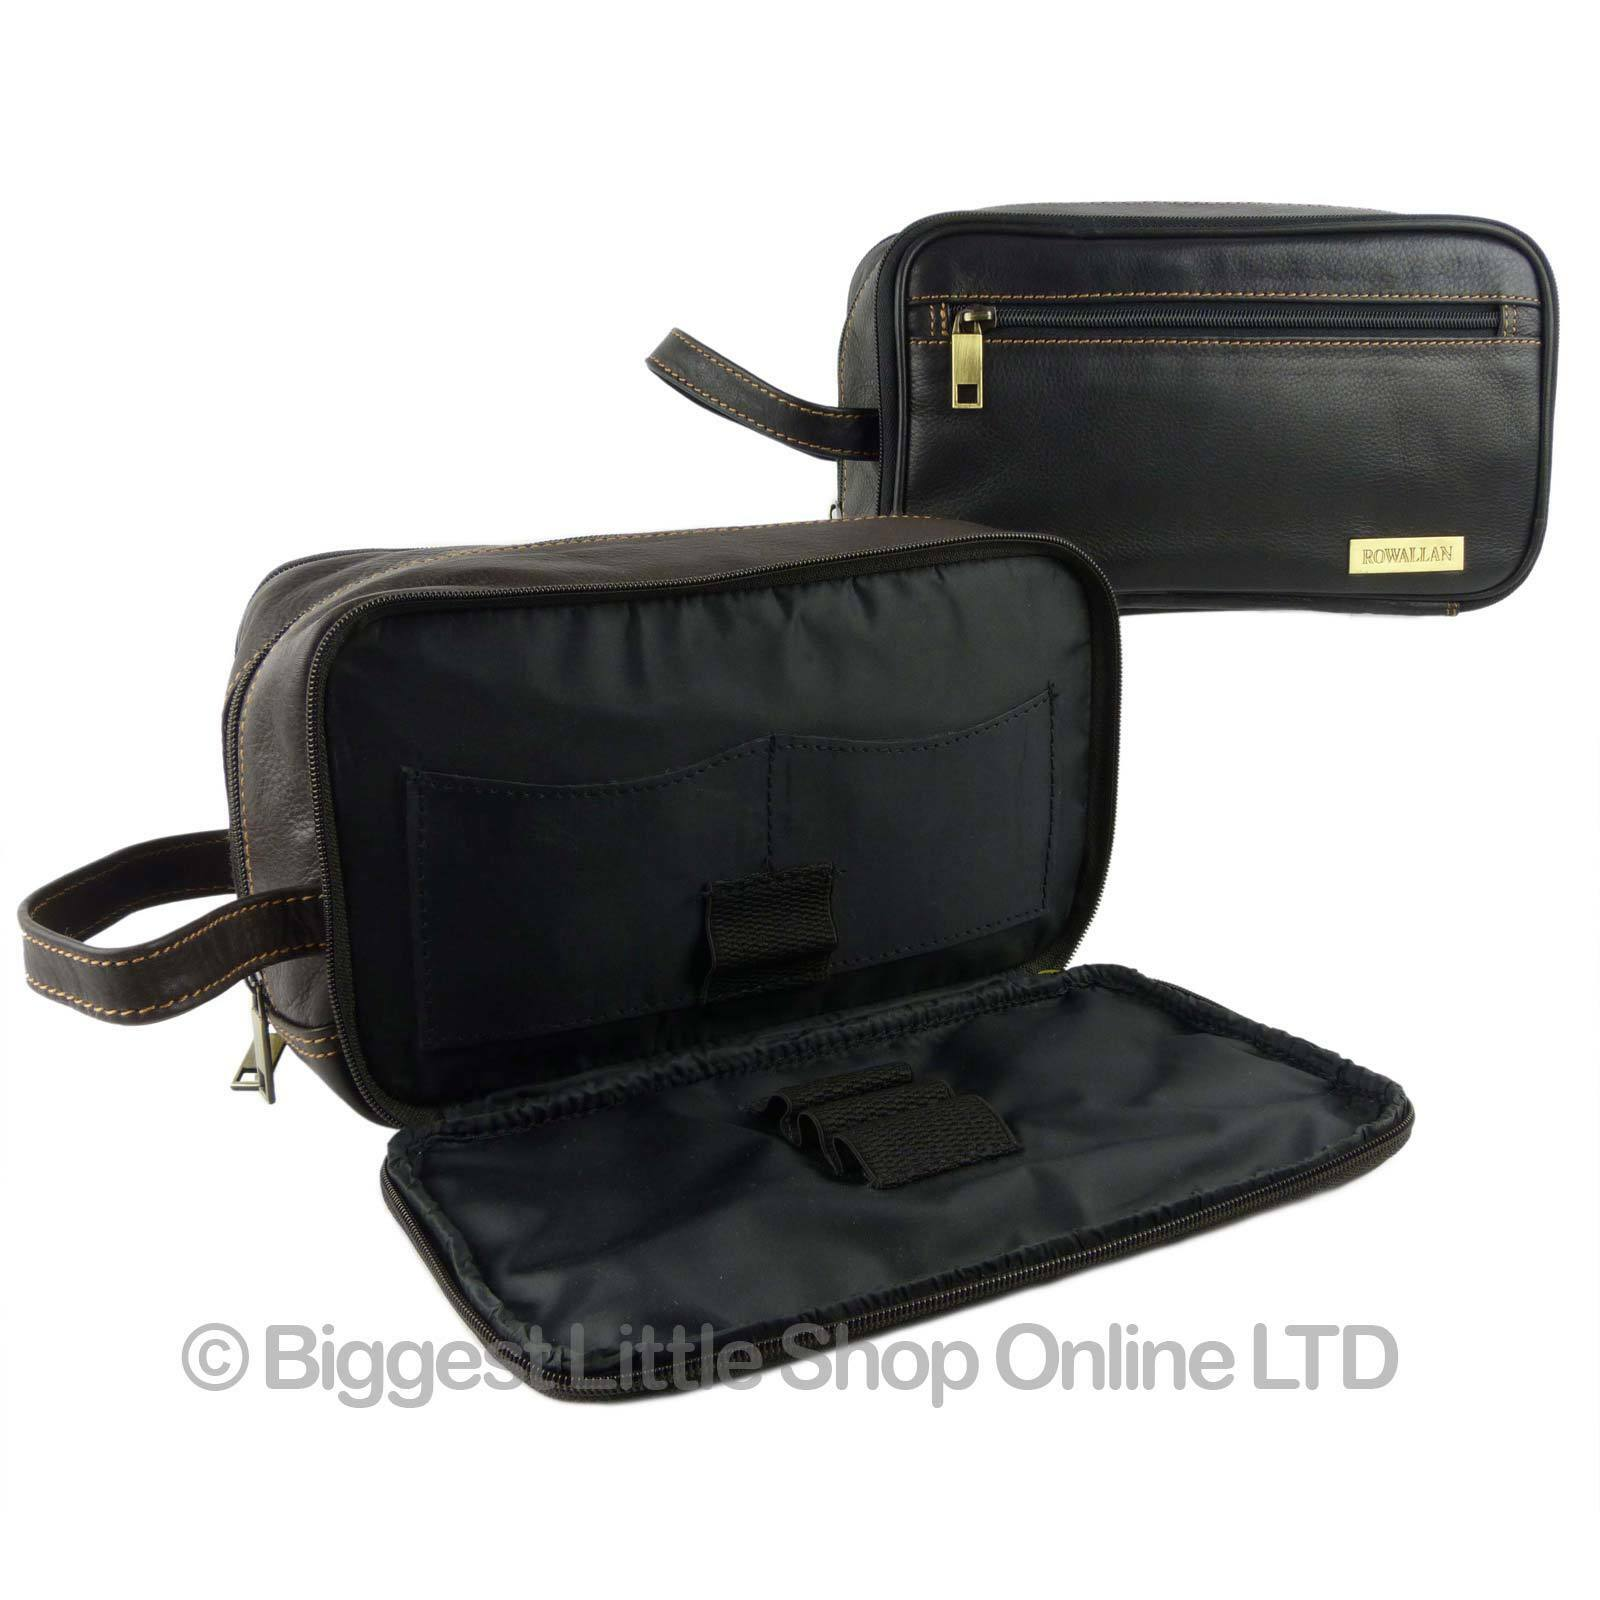 Details about NEW Mens QUALITY Leather Wash Bag by Rowallan Travel Black  Brown Handy Stylish 4ae002125999e